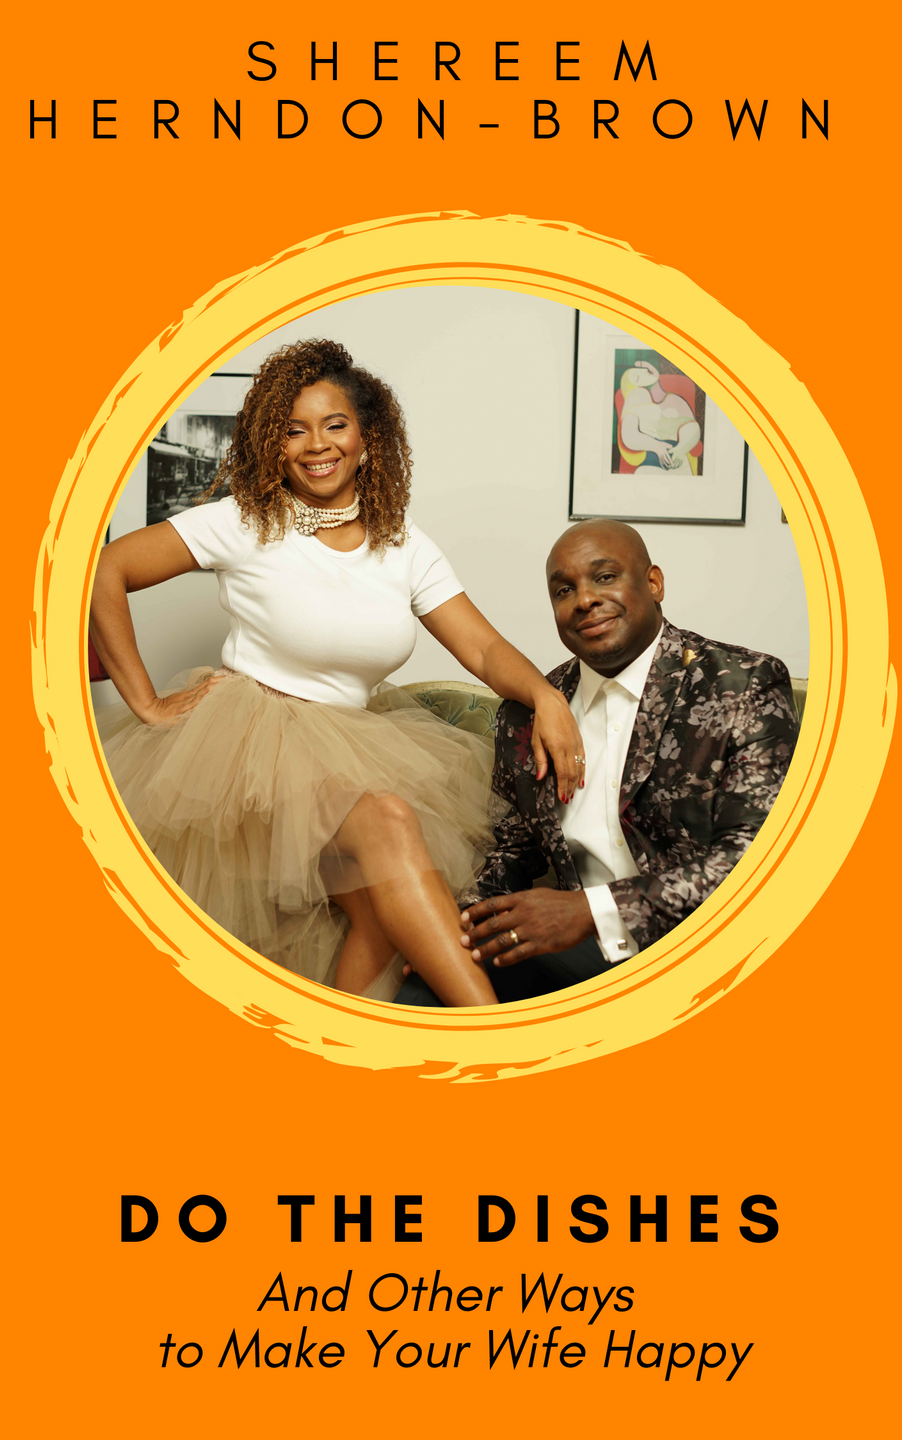 THE POWER COUPLE'S START UP PLAN FOR PROFIT